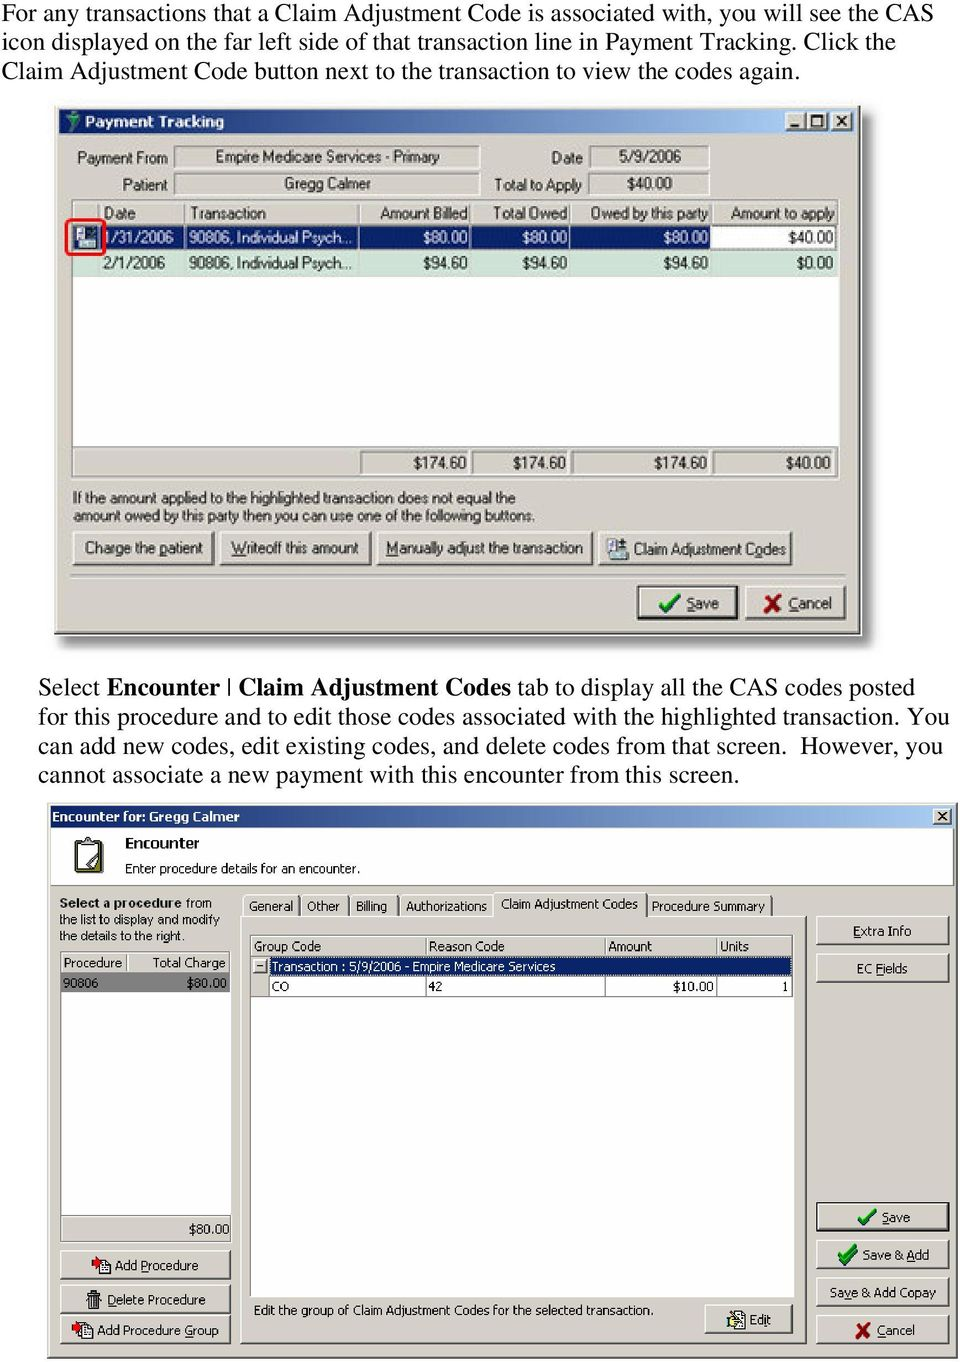 Select Encounter Claim Adjustment Codes tab to display all the CAS codes posted for this procedure and to edit those codes associated with the